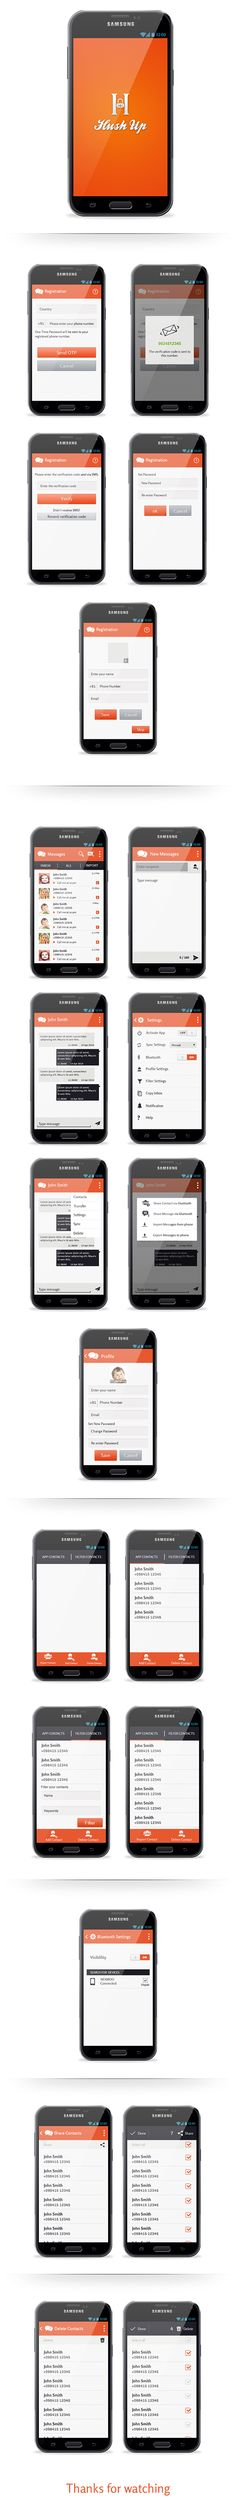 Hush-Up-Android App-keeps your sms private. on Behance